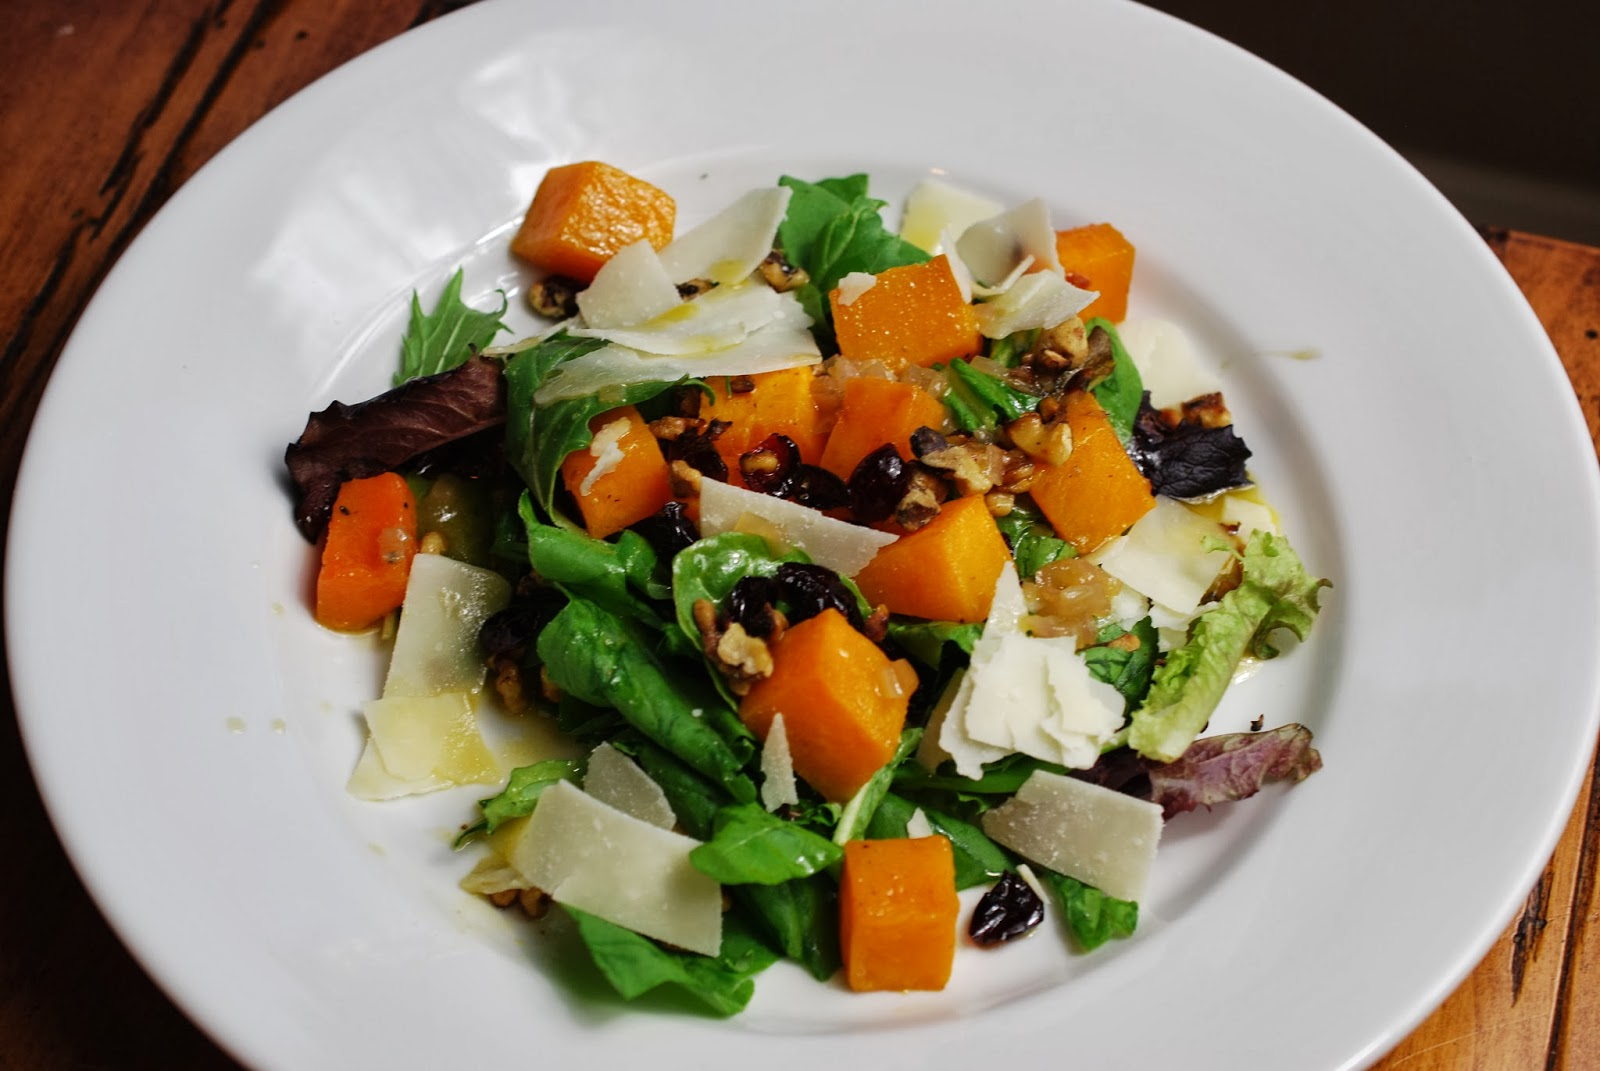 ... Roasted Butternut Squash & Arugula Salad with Warm Cider Vinaigrette